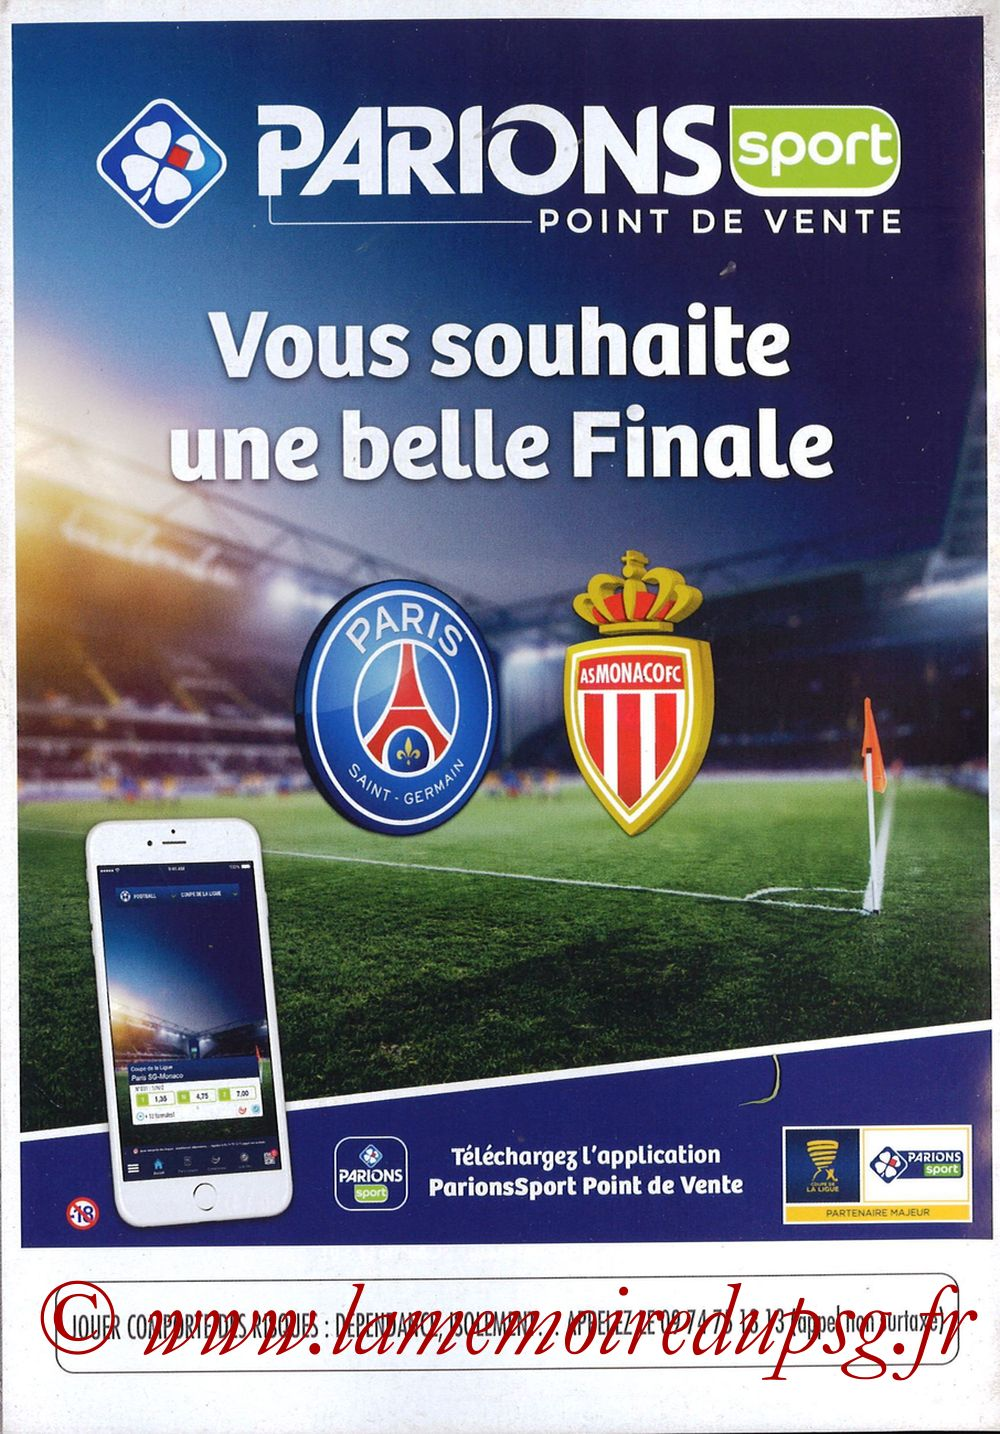 2018-03-31  PSG-Monaco (Finale CL à Bordeaux) - Pages 20